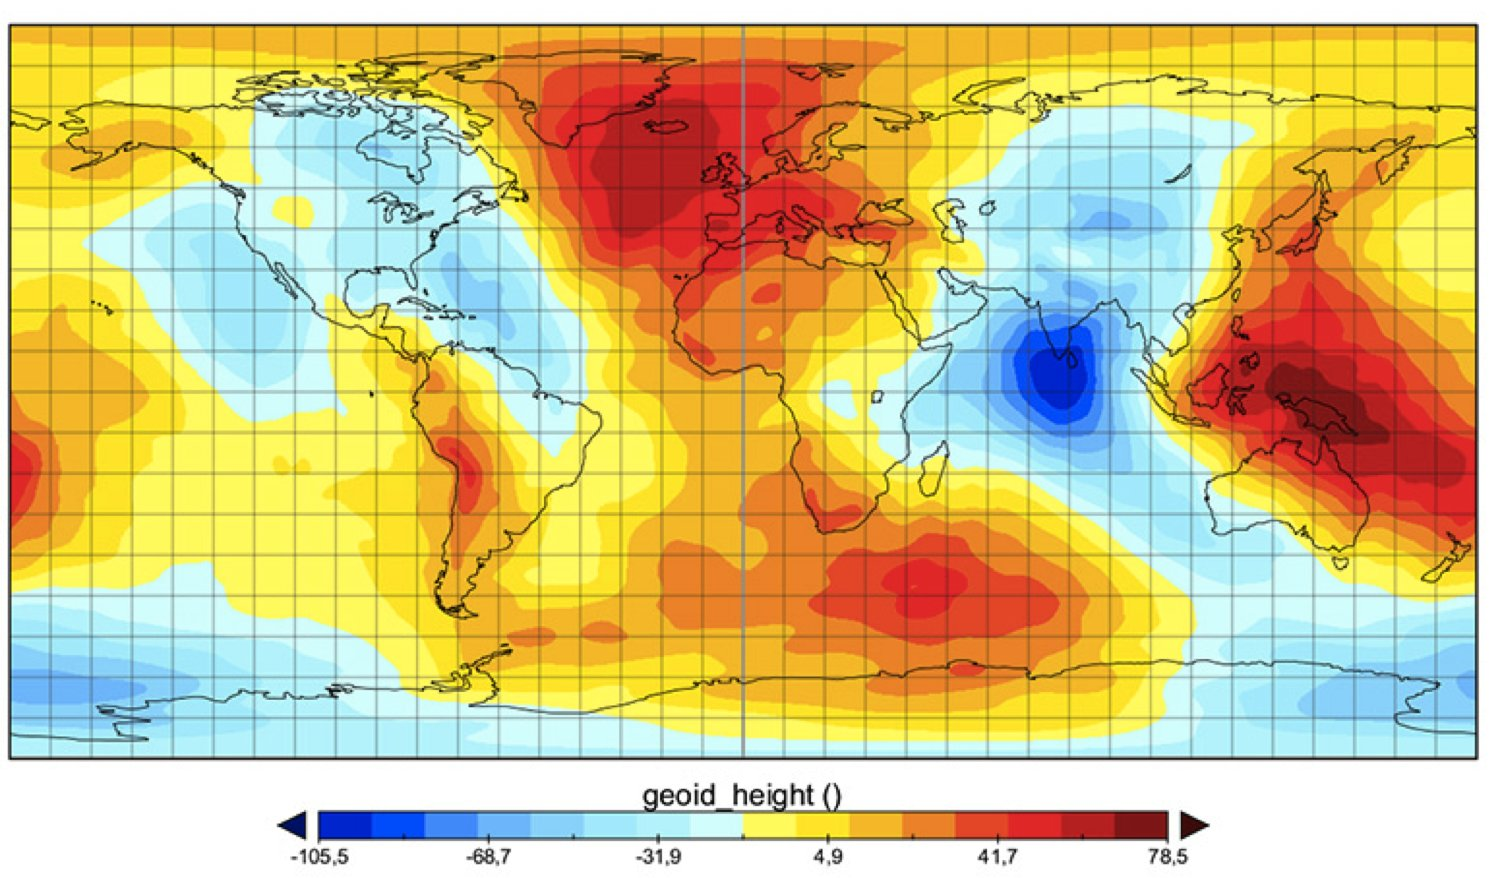 Magnetic Anomaly Map Of The World.The Missing Mass What Is Causing A Geoid Low In The Indian Ocean